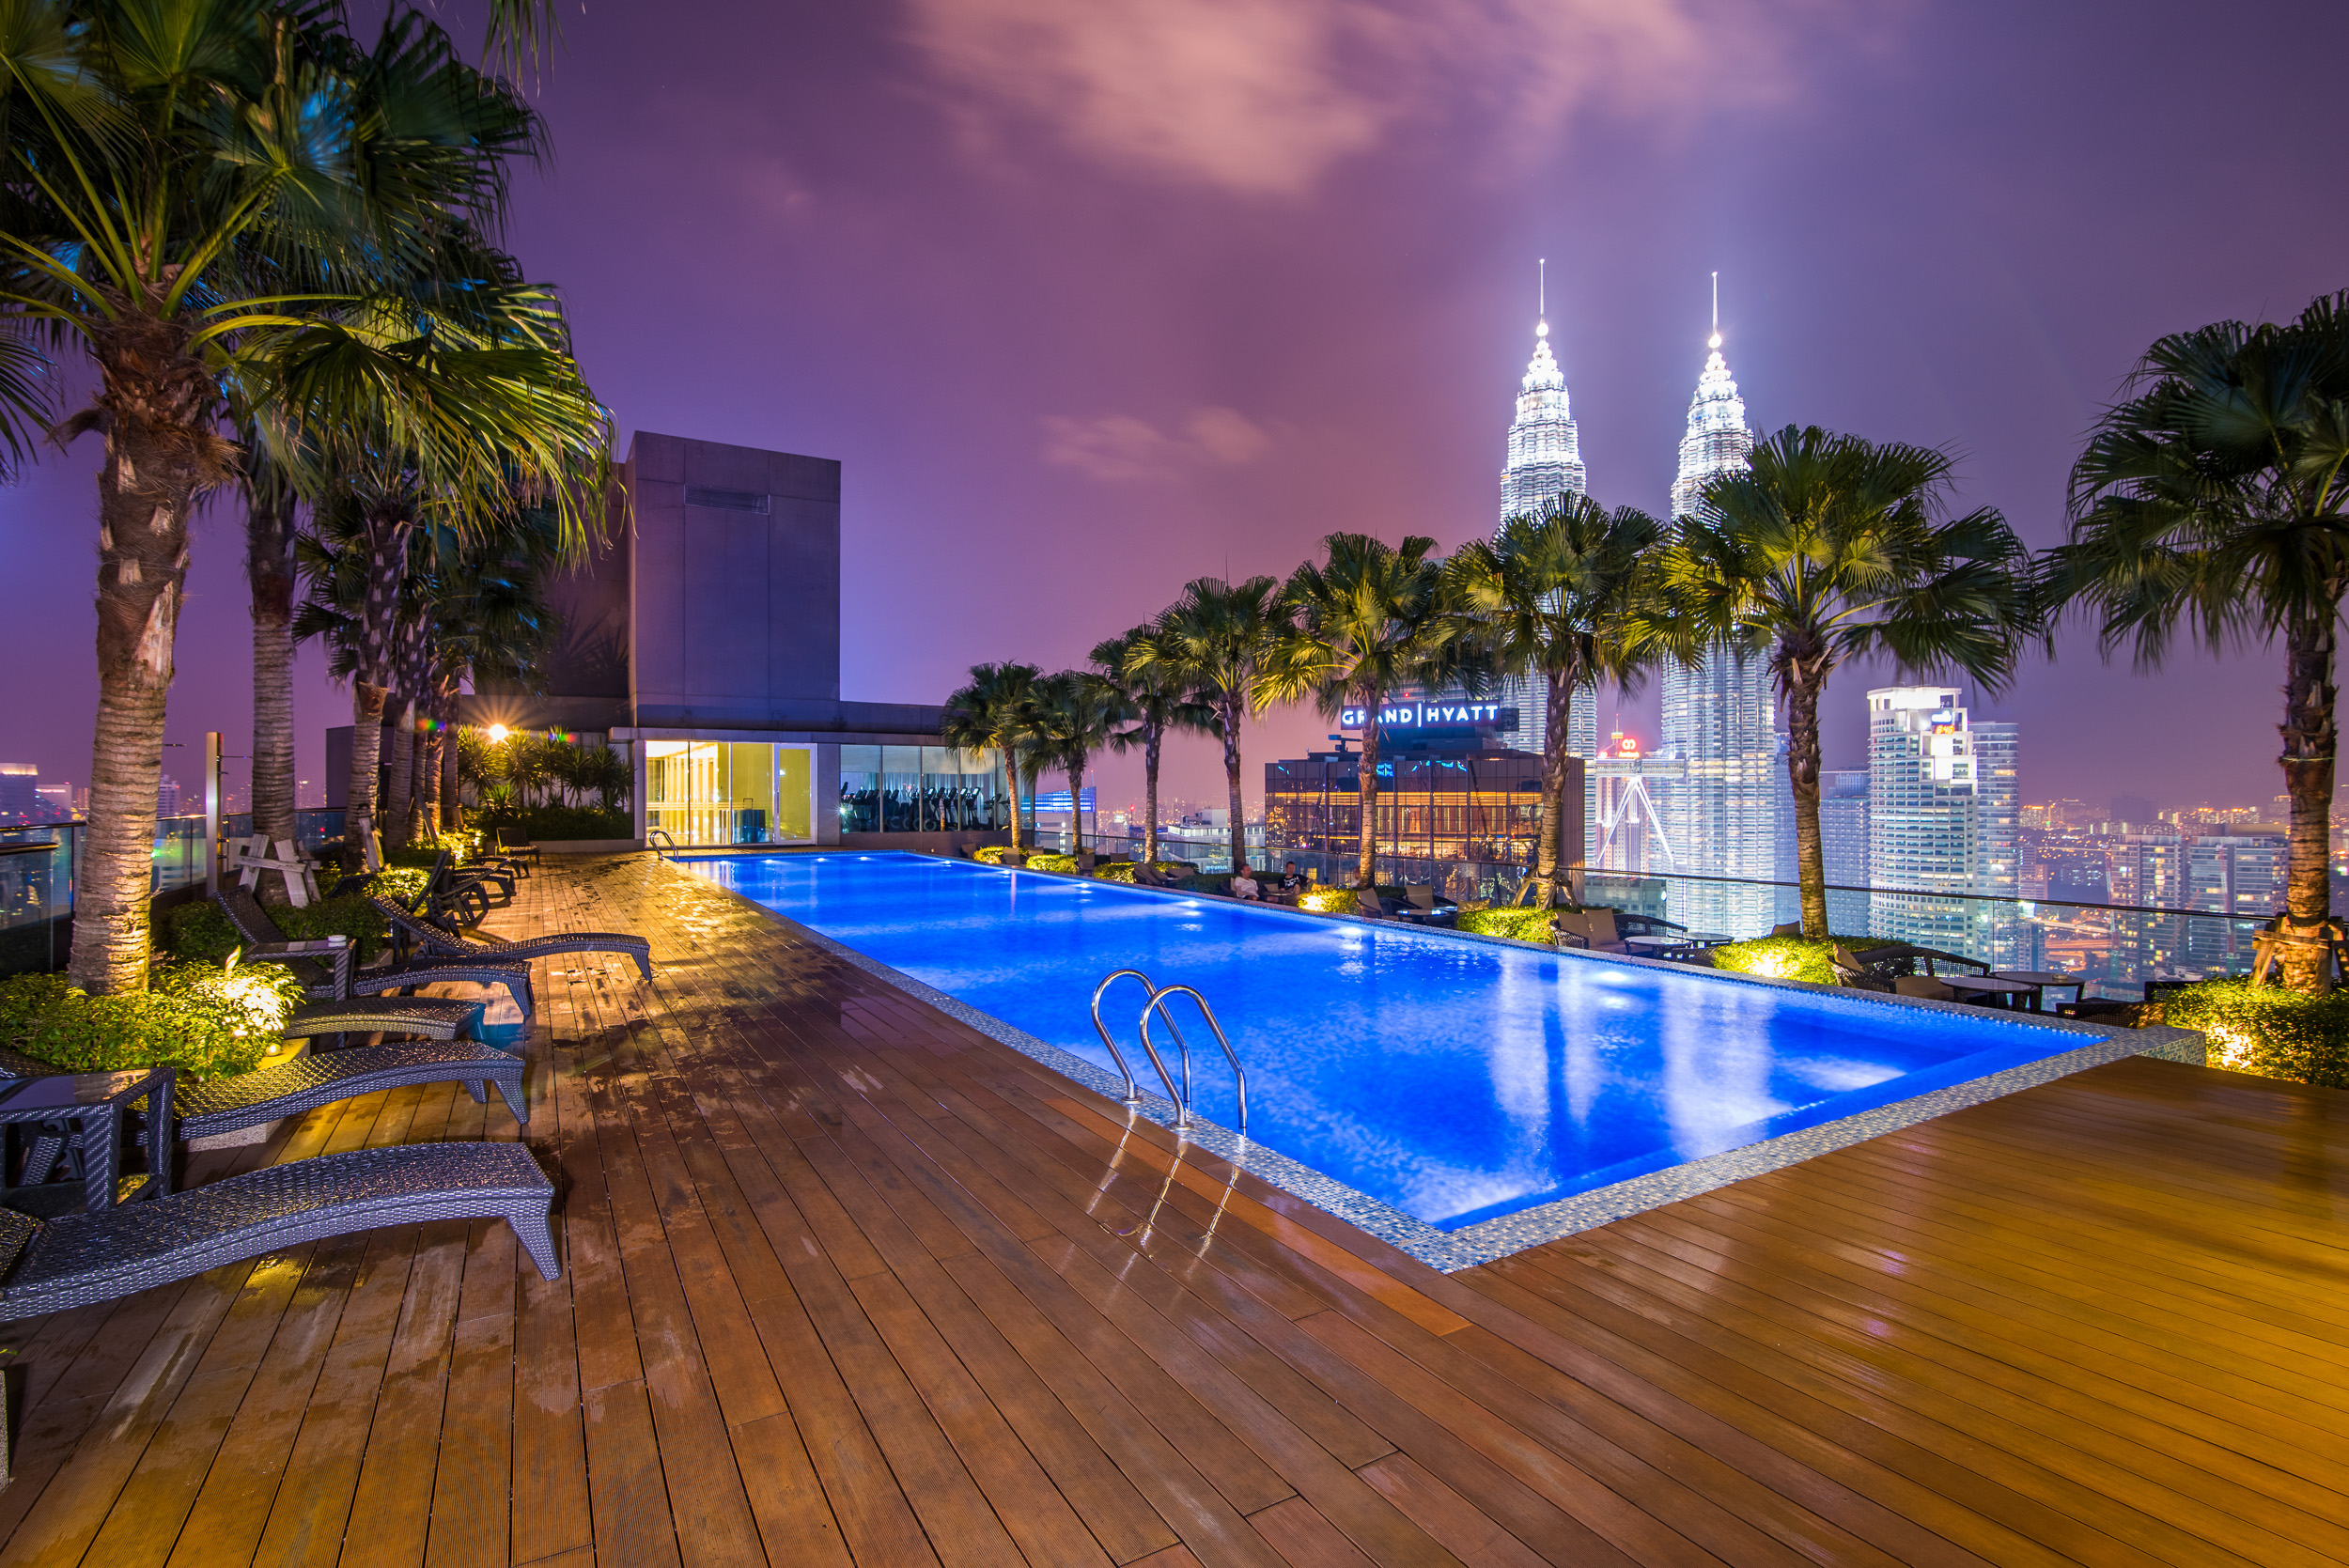 Rooftop Swimming Pool atop Vipod Residences, Kuala Lumpur, Malaysia with Petronas Towers in the background